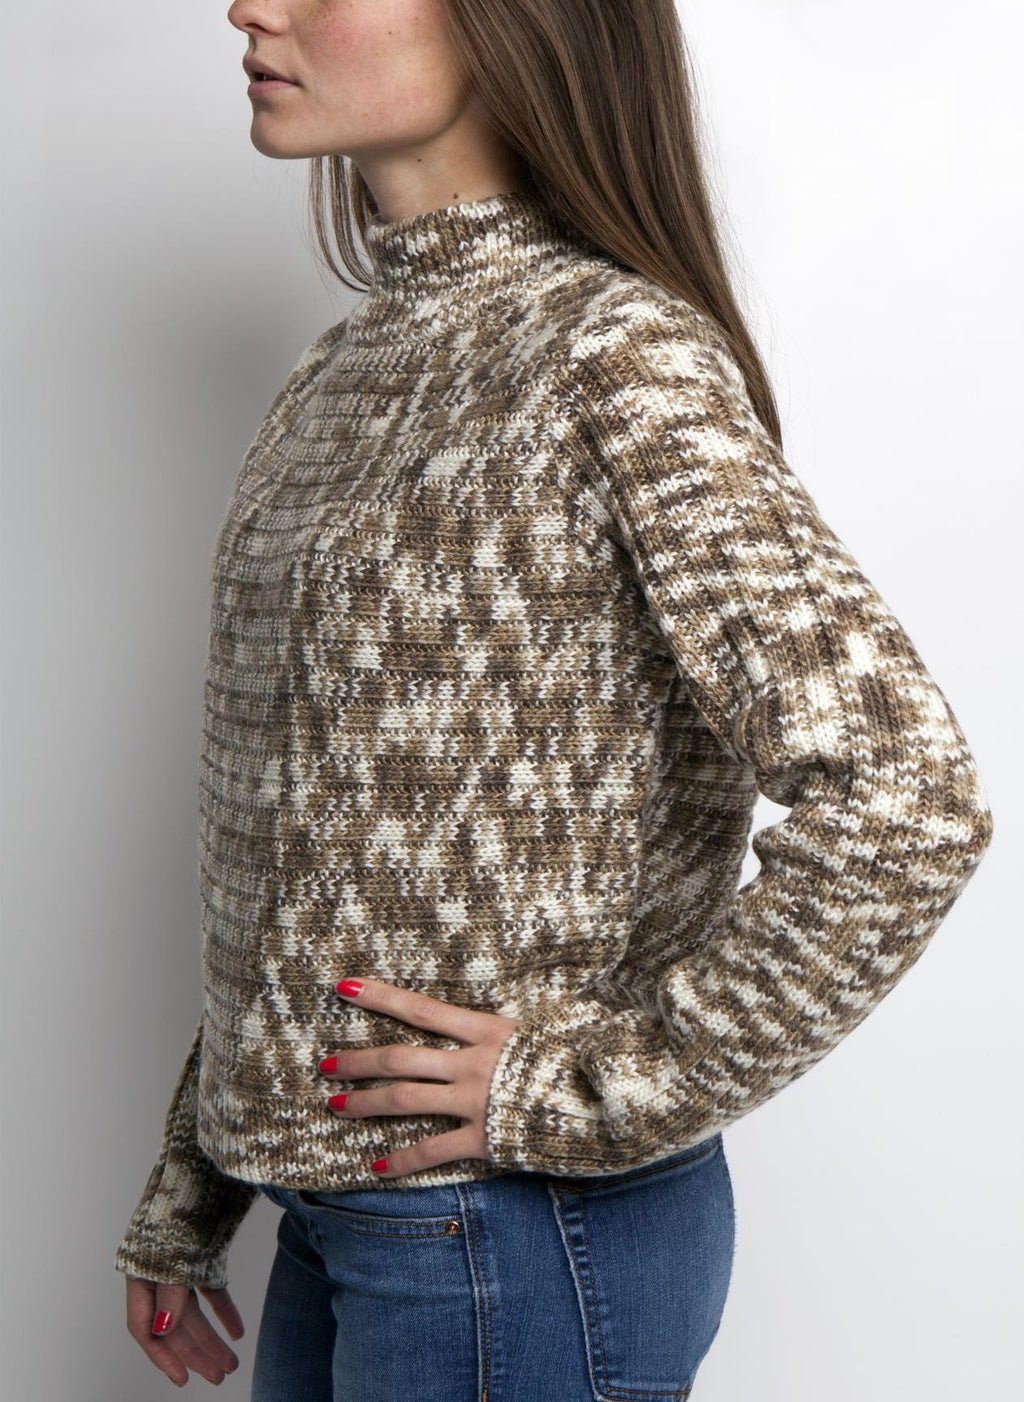 SIDE VIEW ELLA MOCK SWEATER IN MUSHROOM COLOR ON FEMALE MODEL